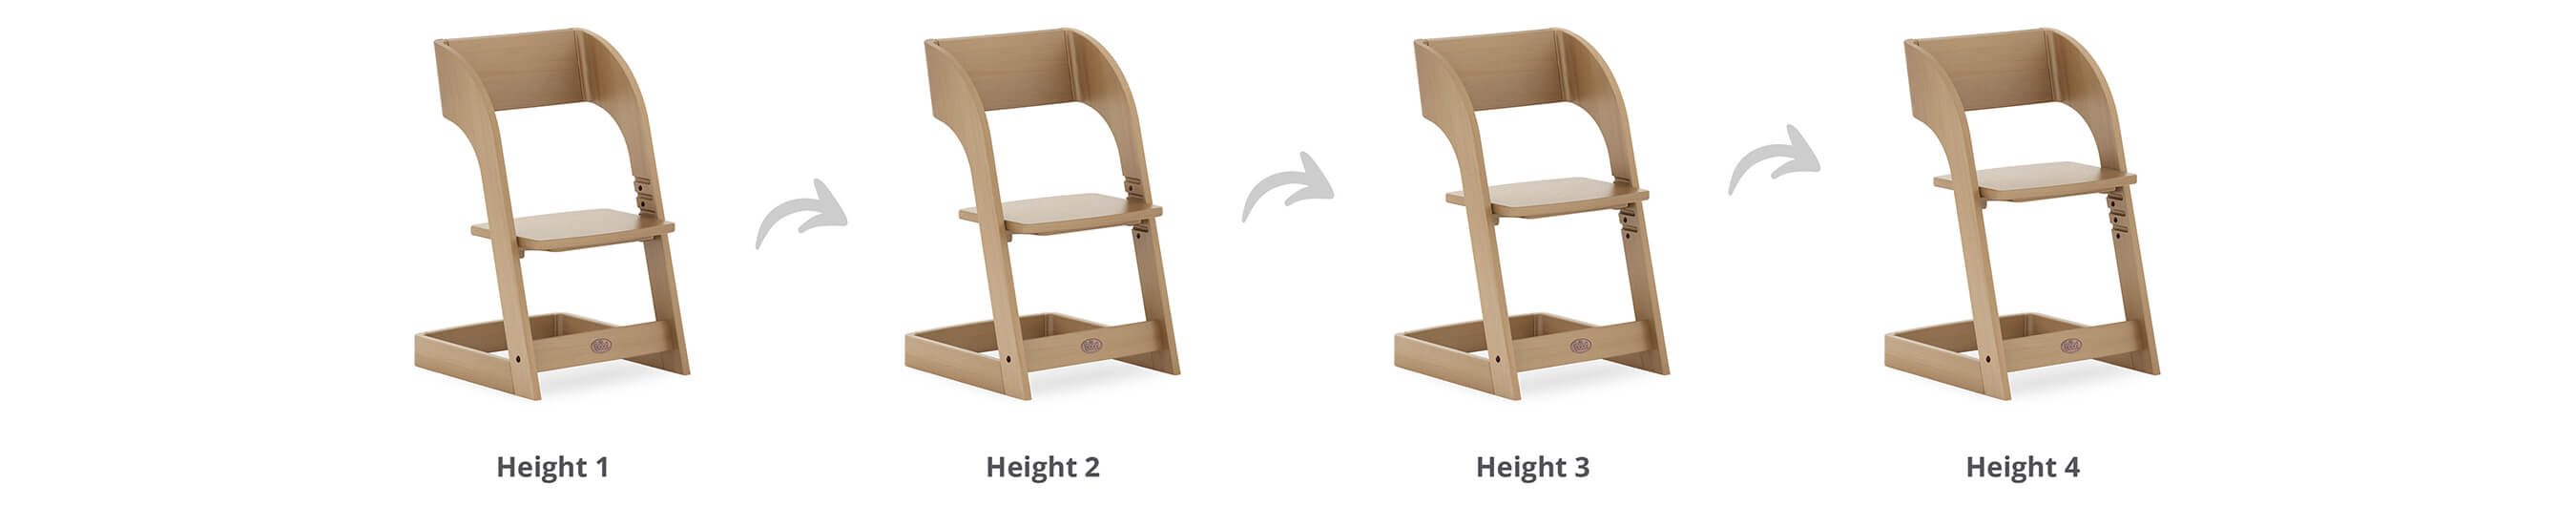 Feature_Highlight_CMS_Blocks_Height_Adjustable_Desks_and_Chairs_January_2021-03